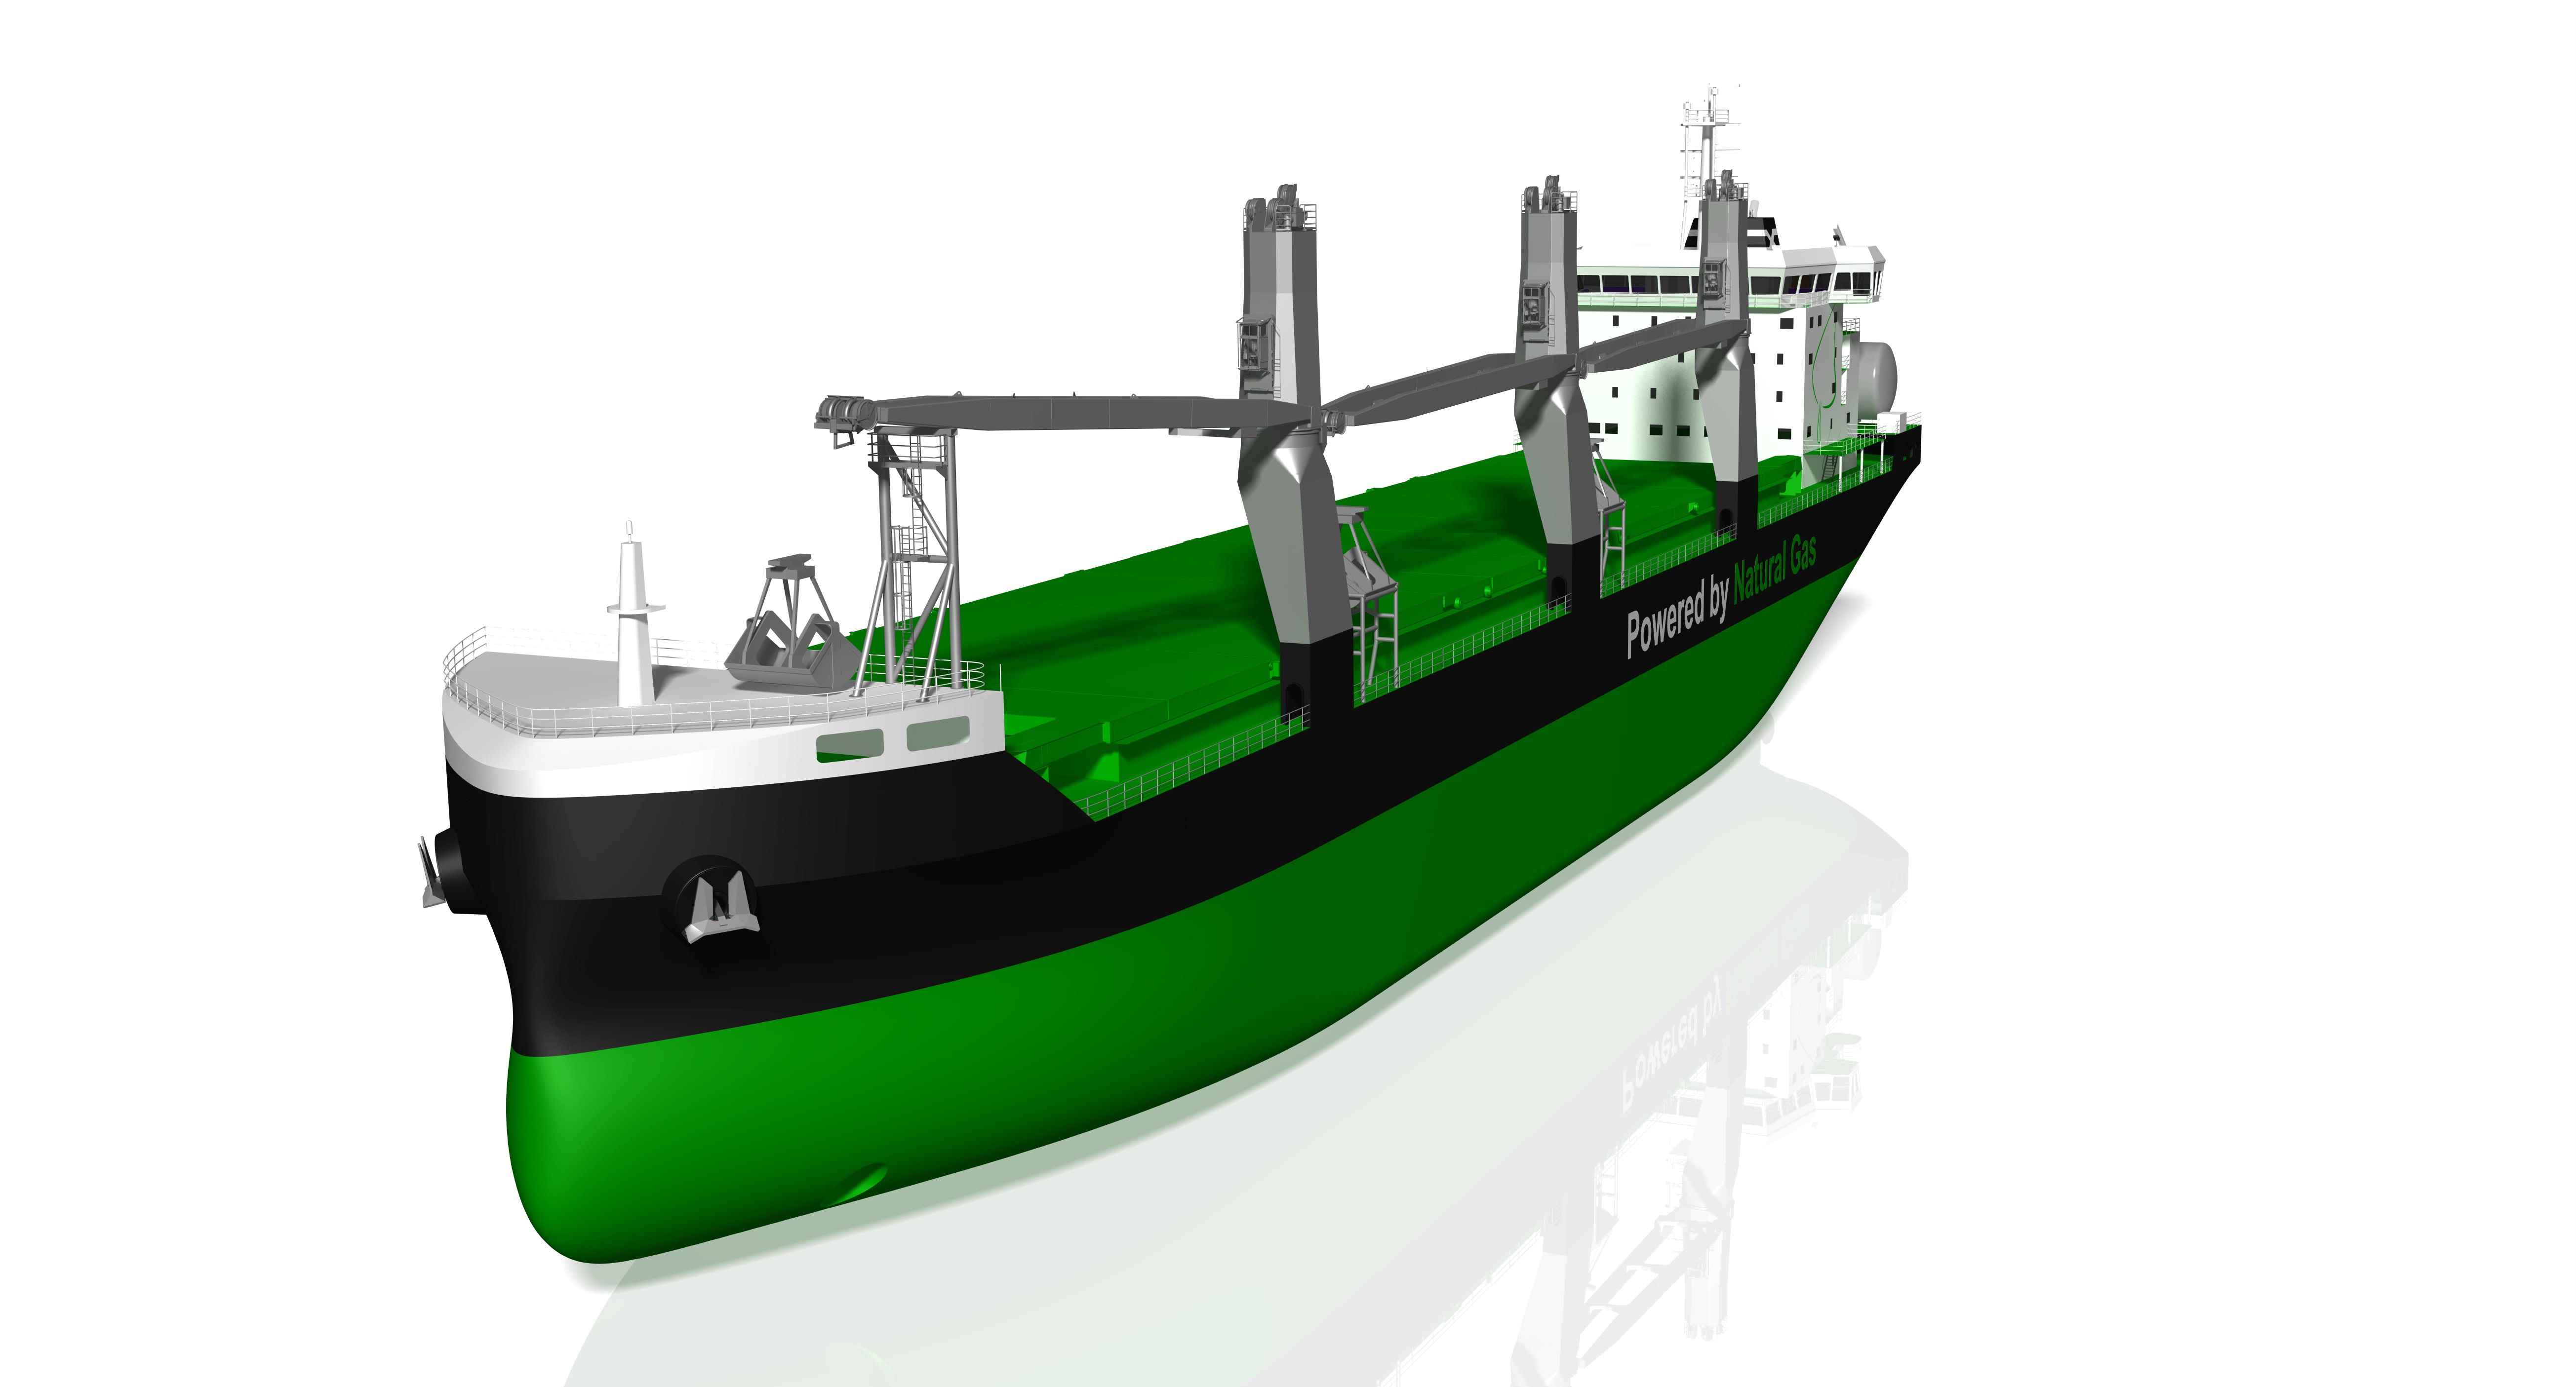 The cranes will be fitted on board two new LNG-powered Handysize bulkers